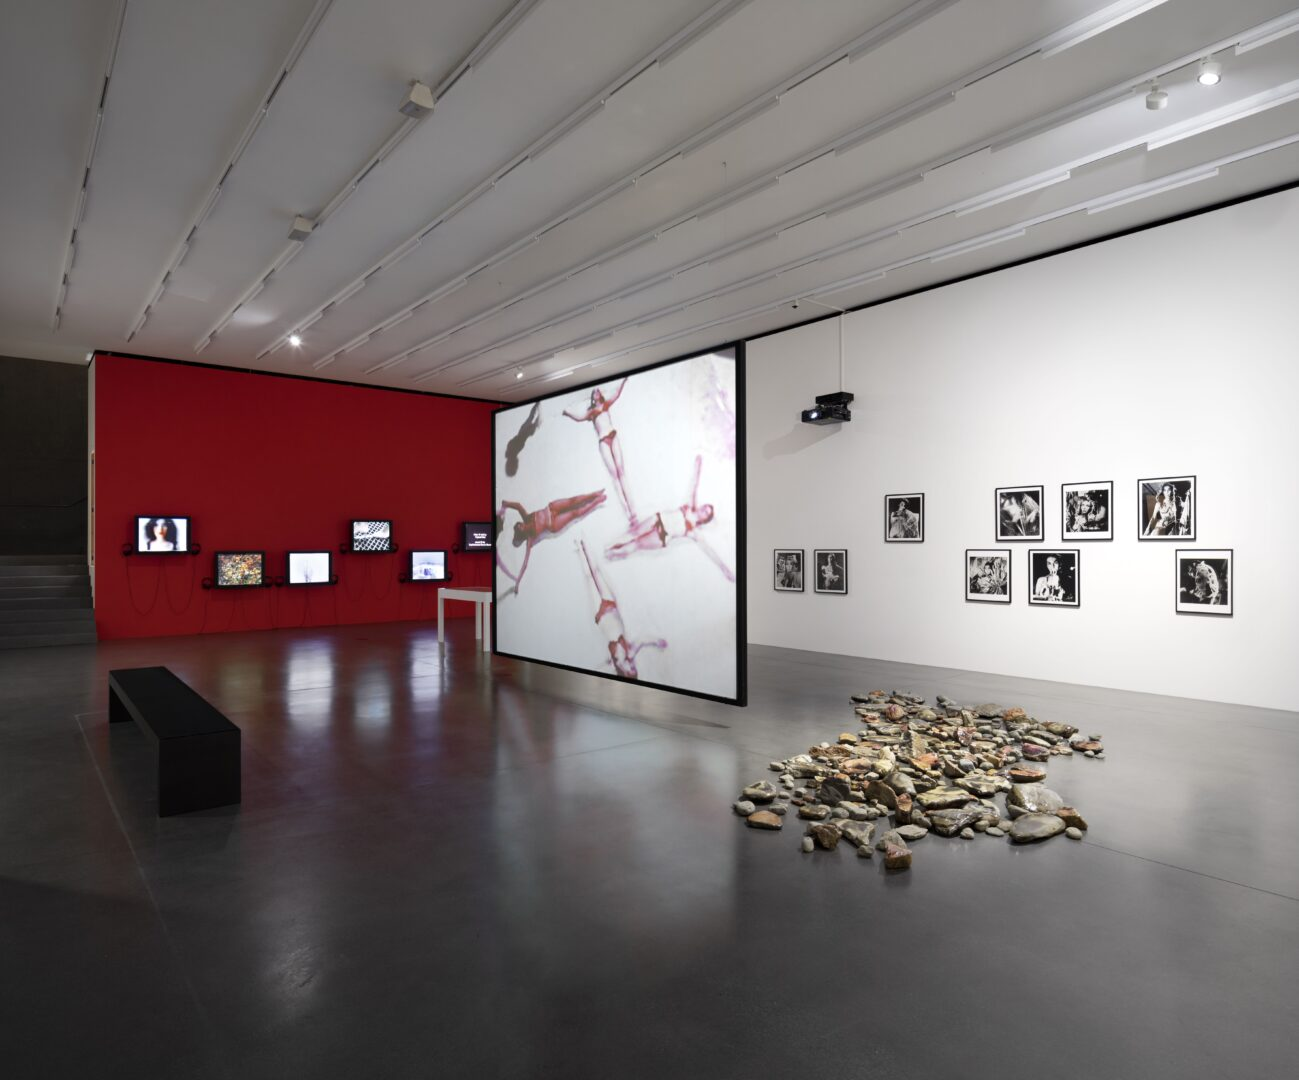 Exhibition View Groupshow «Up to and Including Limits: After Carolee Schneemann; view on Carolee Schneemann, Meat Joy, 1964/2008 and Aura Rosenberg, Dialectical Porn Rock Circle, 1990–1993» at Muzeum Susch, Susch, 2019-2020 / Photo: Maja Wirkus / Courtesy: the artist and Muzeum Susch